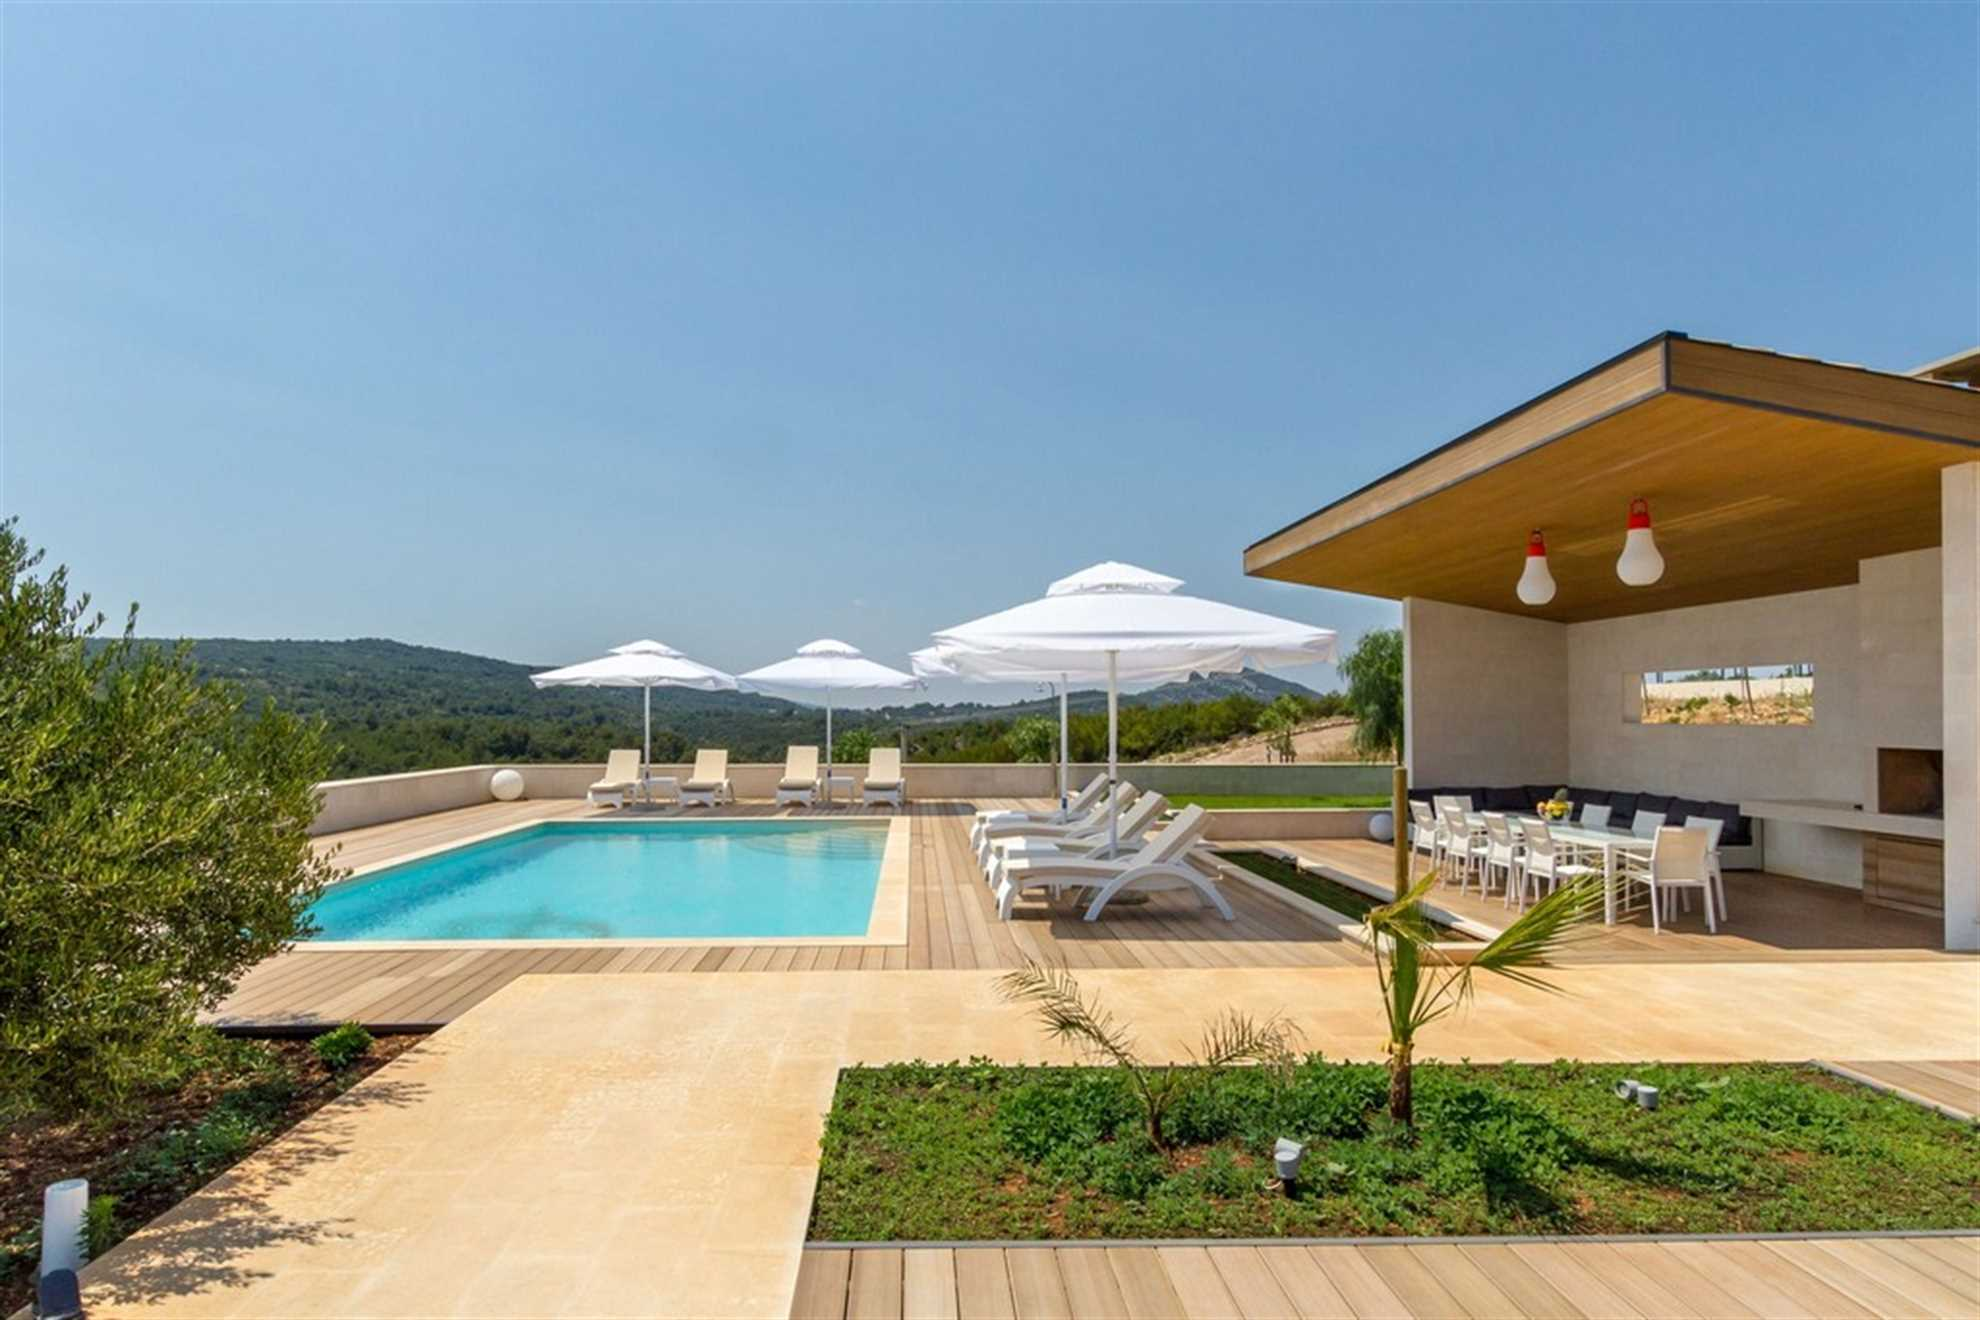 Luxury Villa Pearl of Hvar with Pool for Rent on the island of Hvar